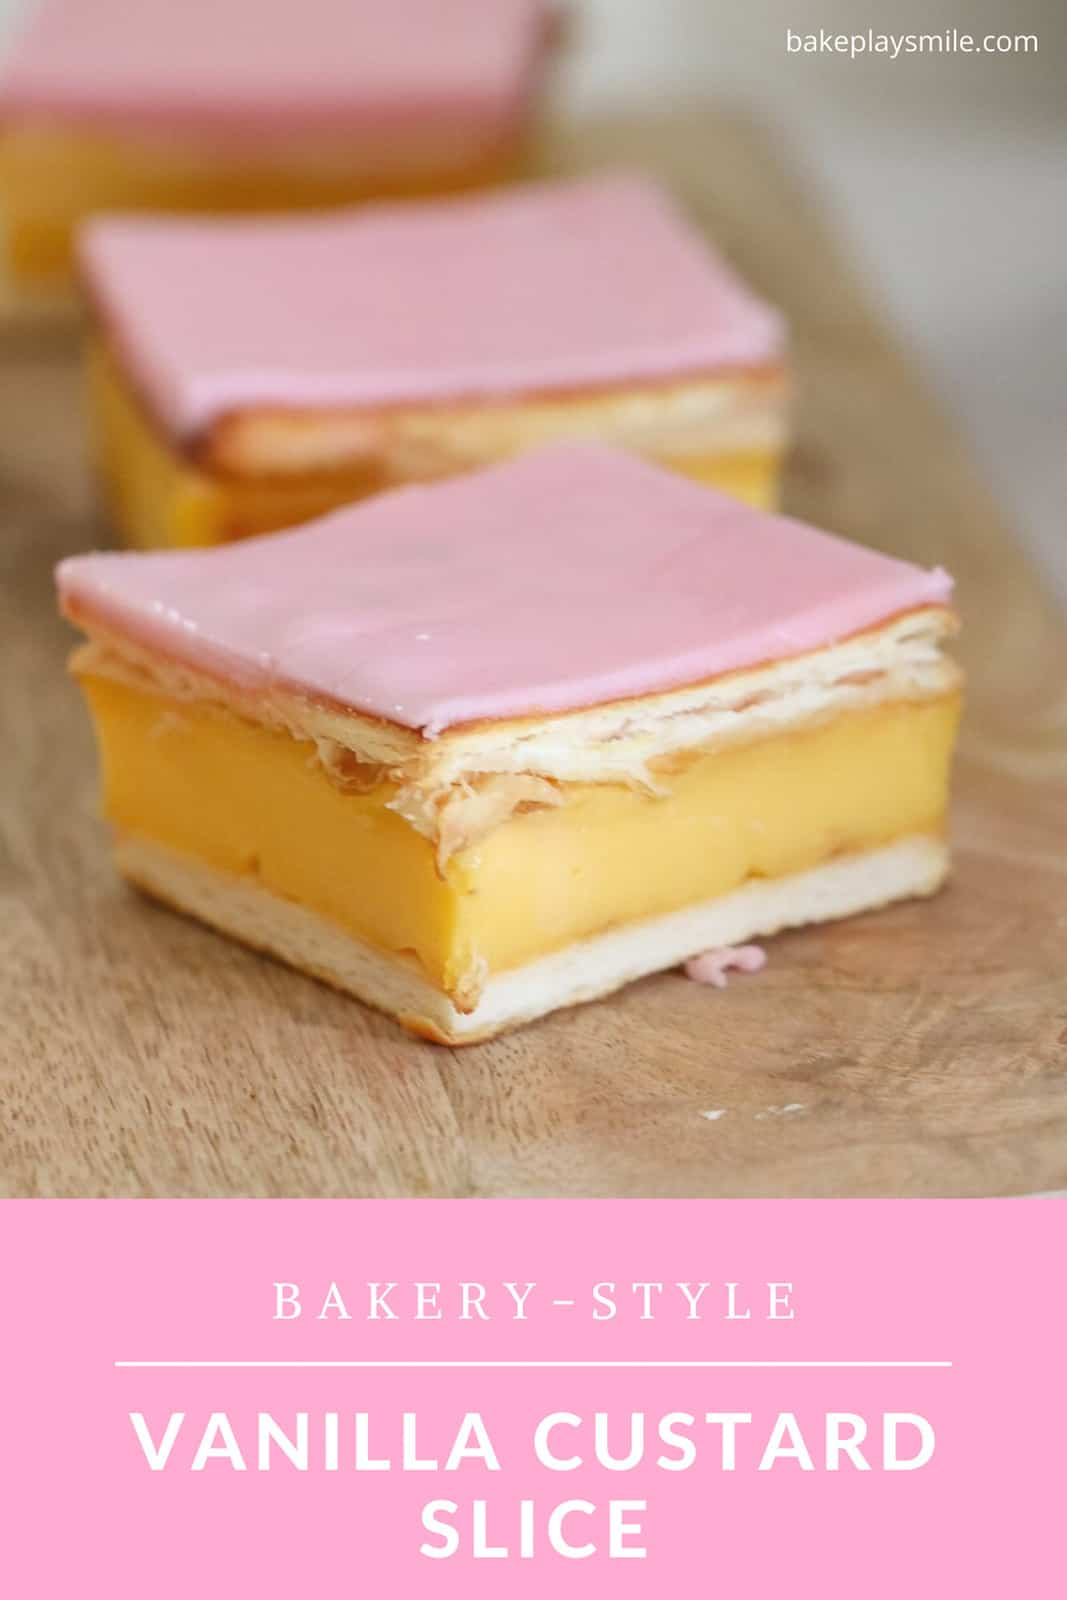 Pieces of custard slice with pastry and pink icing glaze on a wooden board.